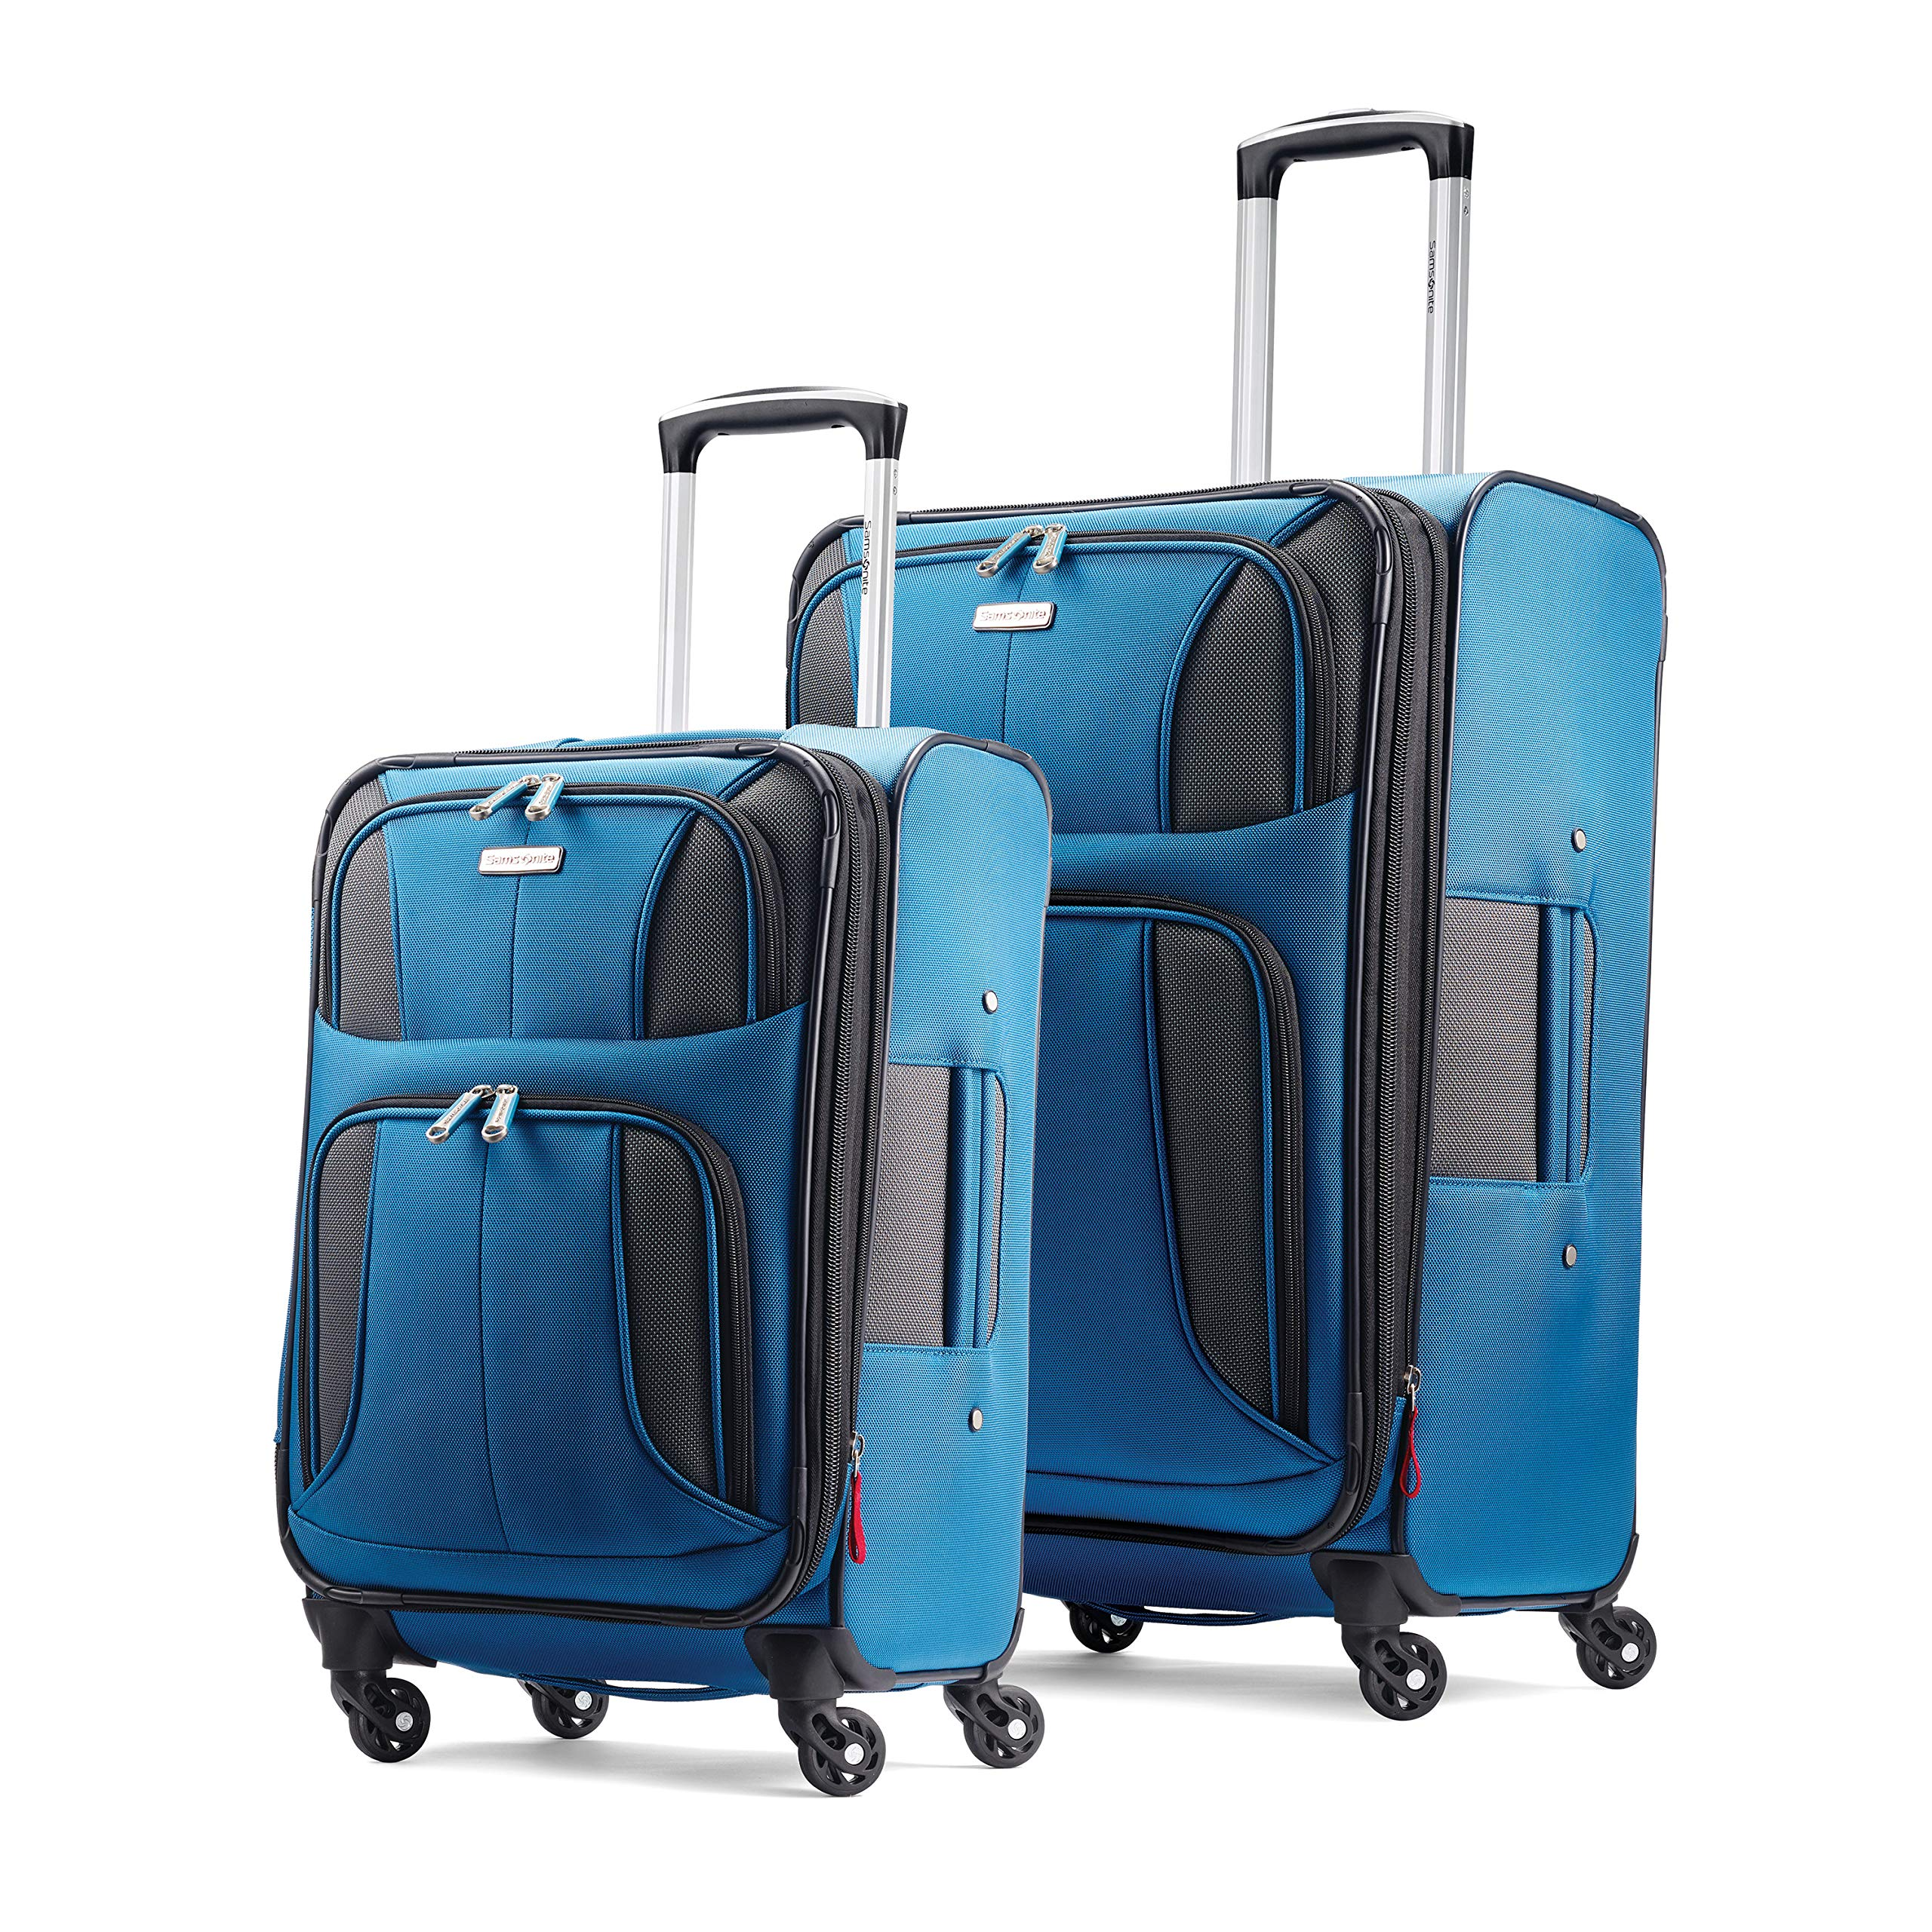 Samsonite Aspire xLite Expandable Softside Set with Spinner Wheels, 2-Piece (20''/25''), Blue Dream